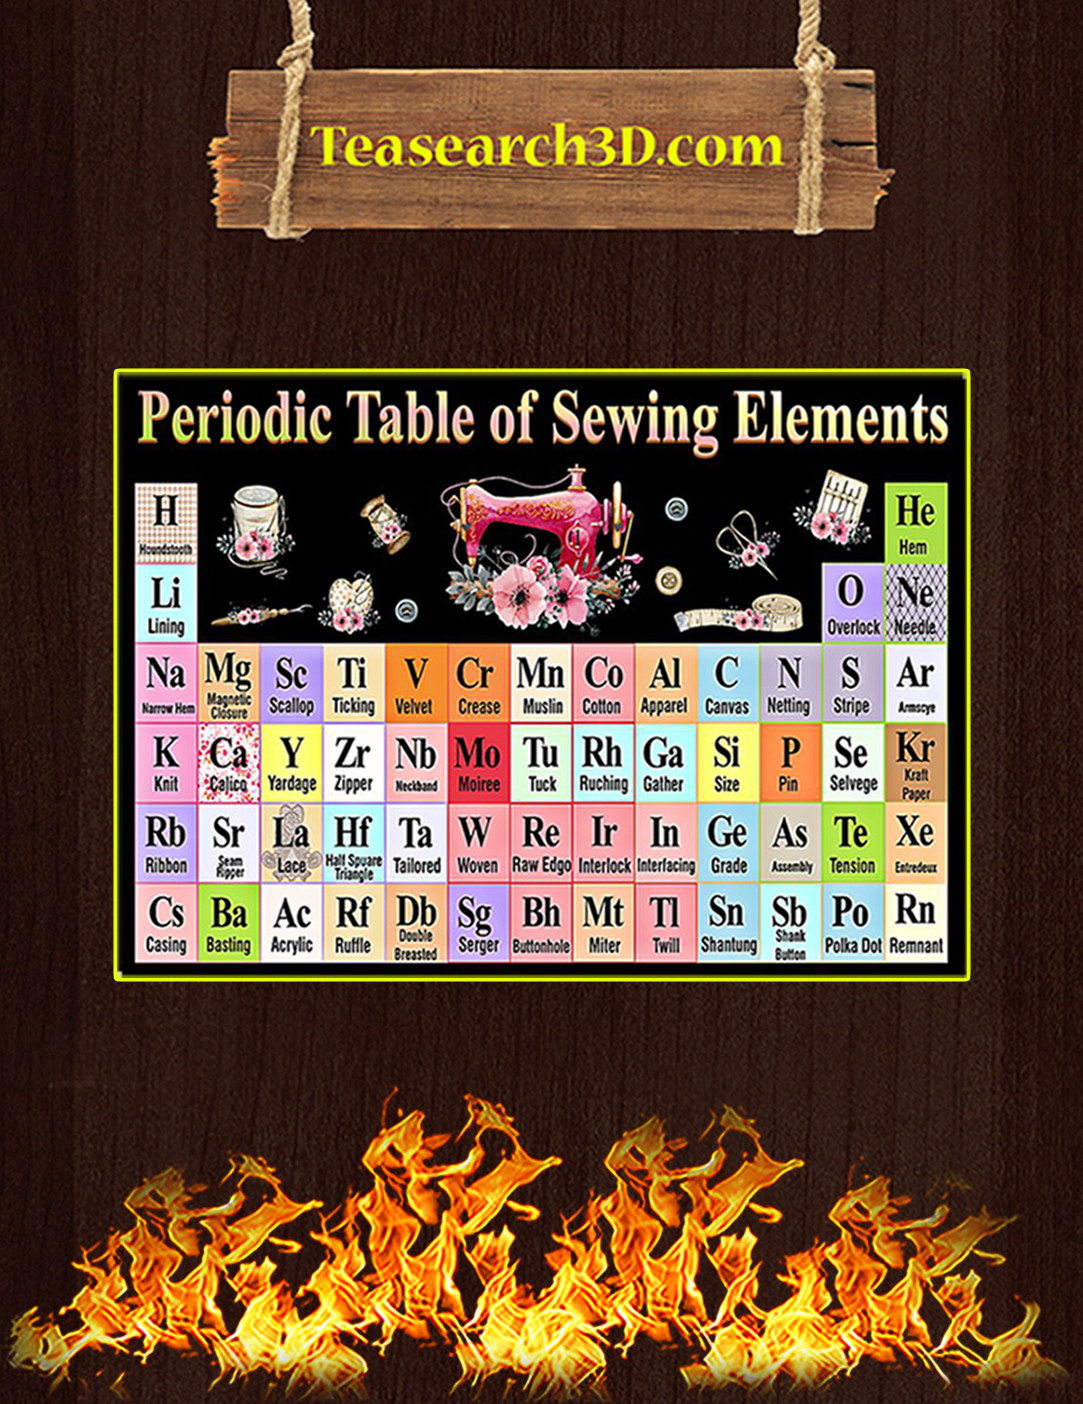 Periodic table of sewing elements poster A2